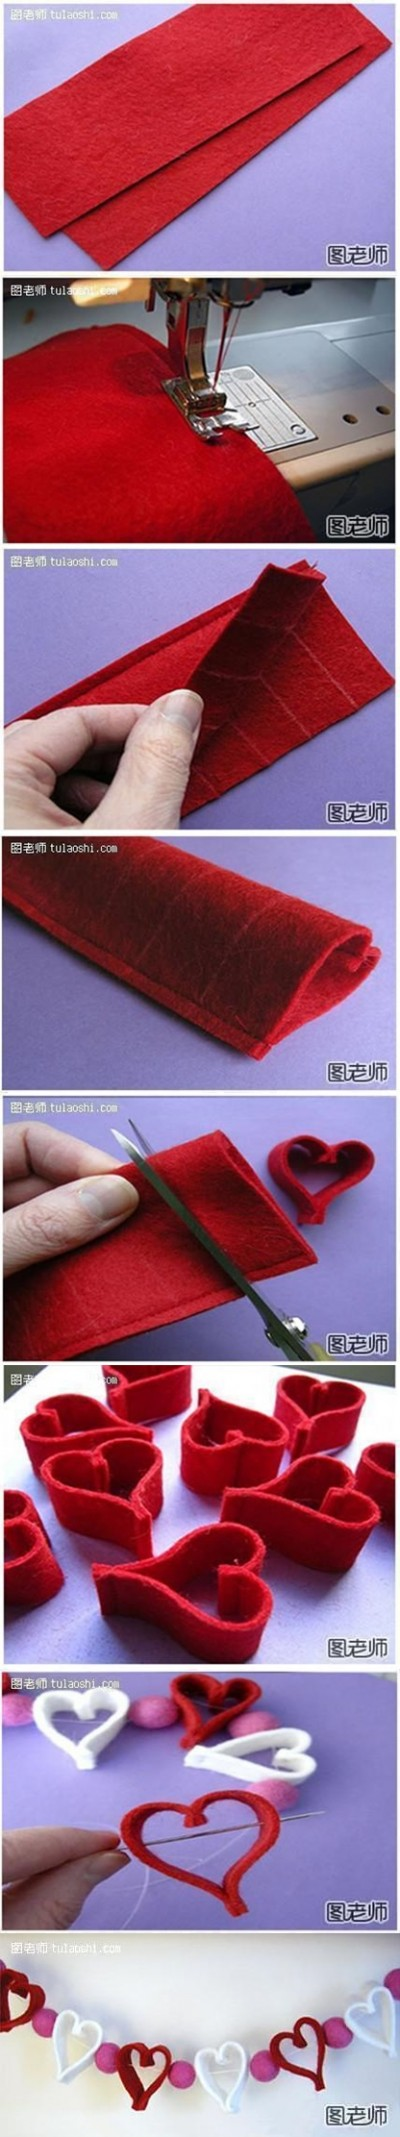 How to make cute heart decoration string step by step DIY instrutions